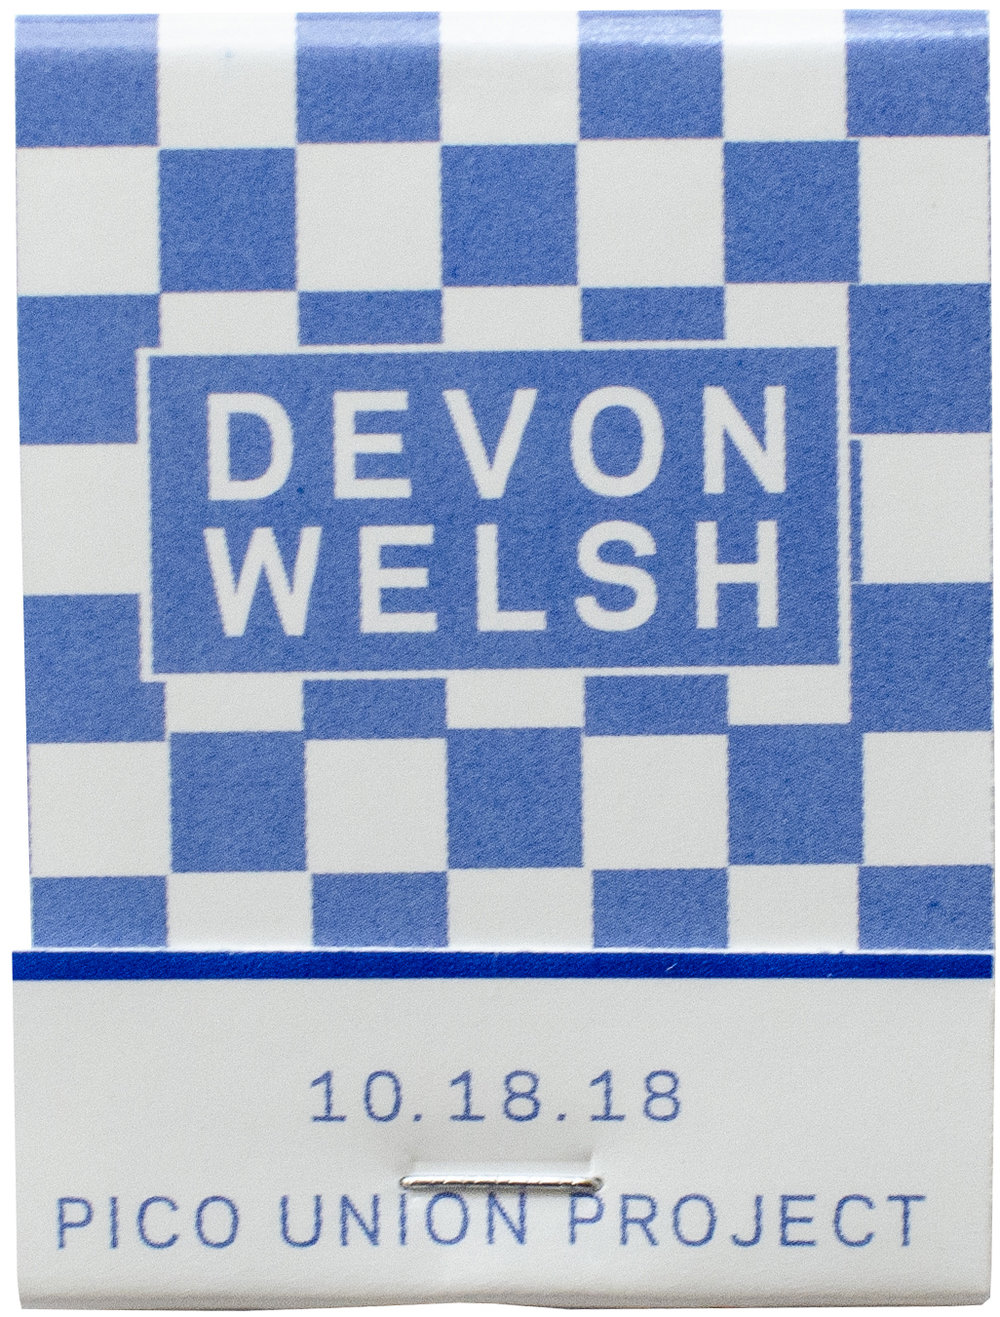 2018.10.18 Devon Welsh.jpg